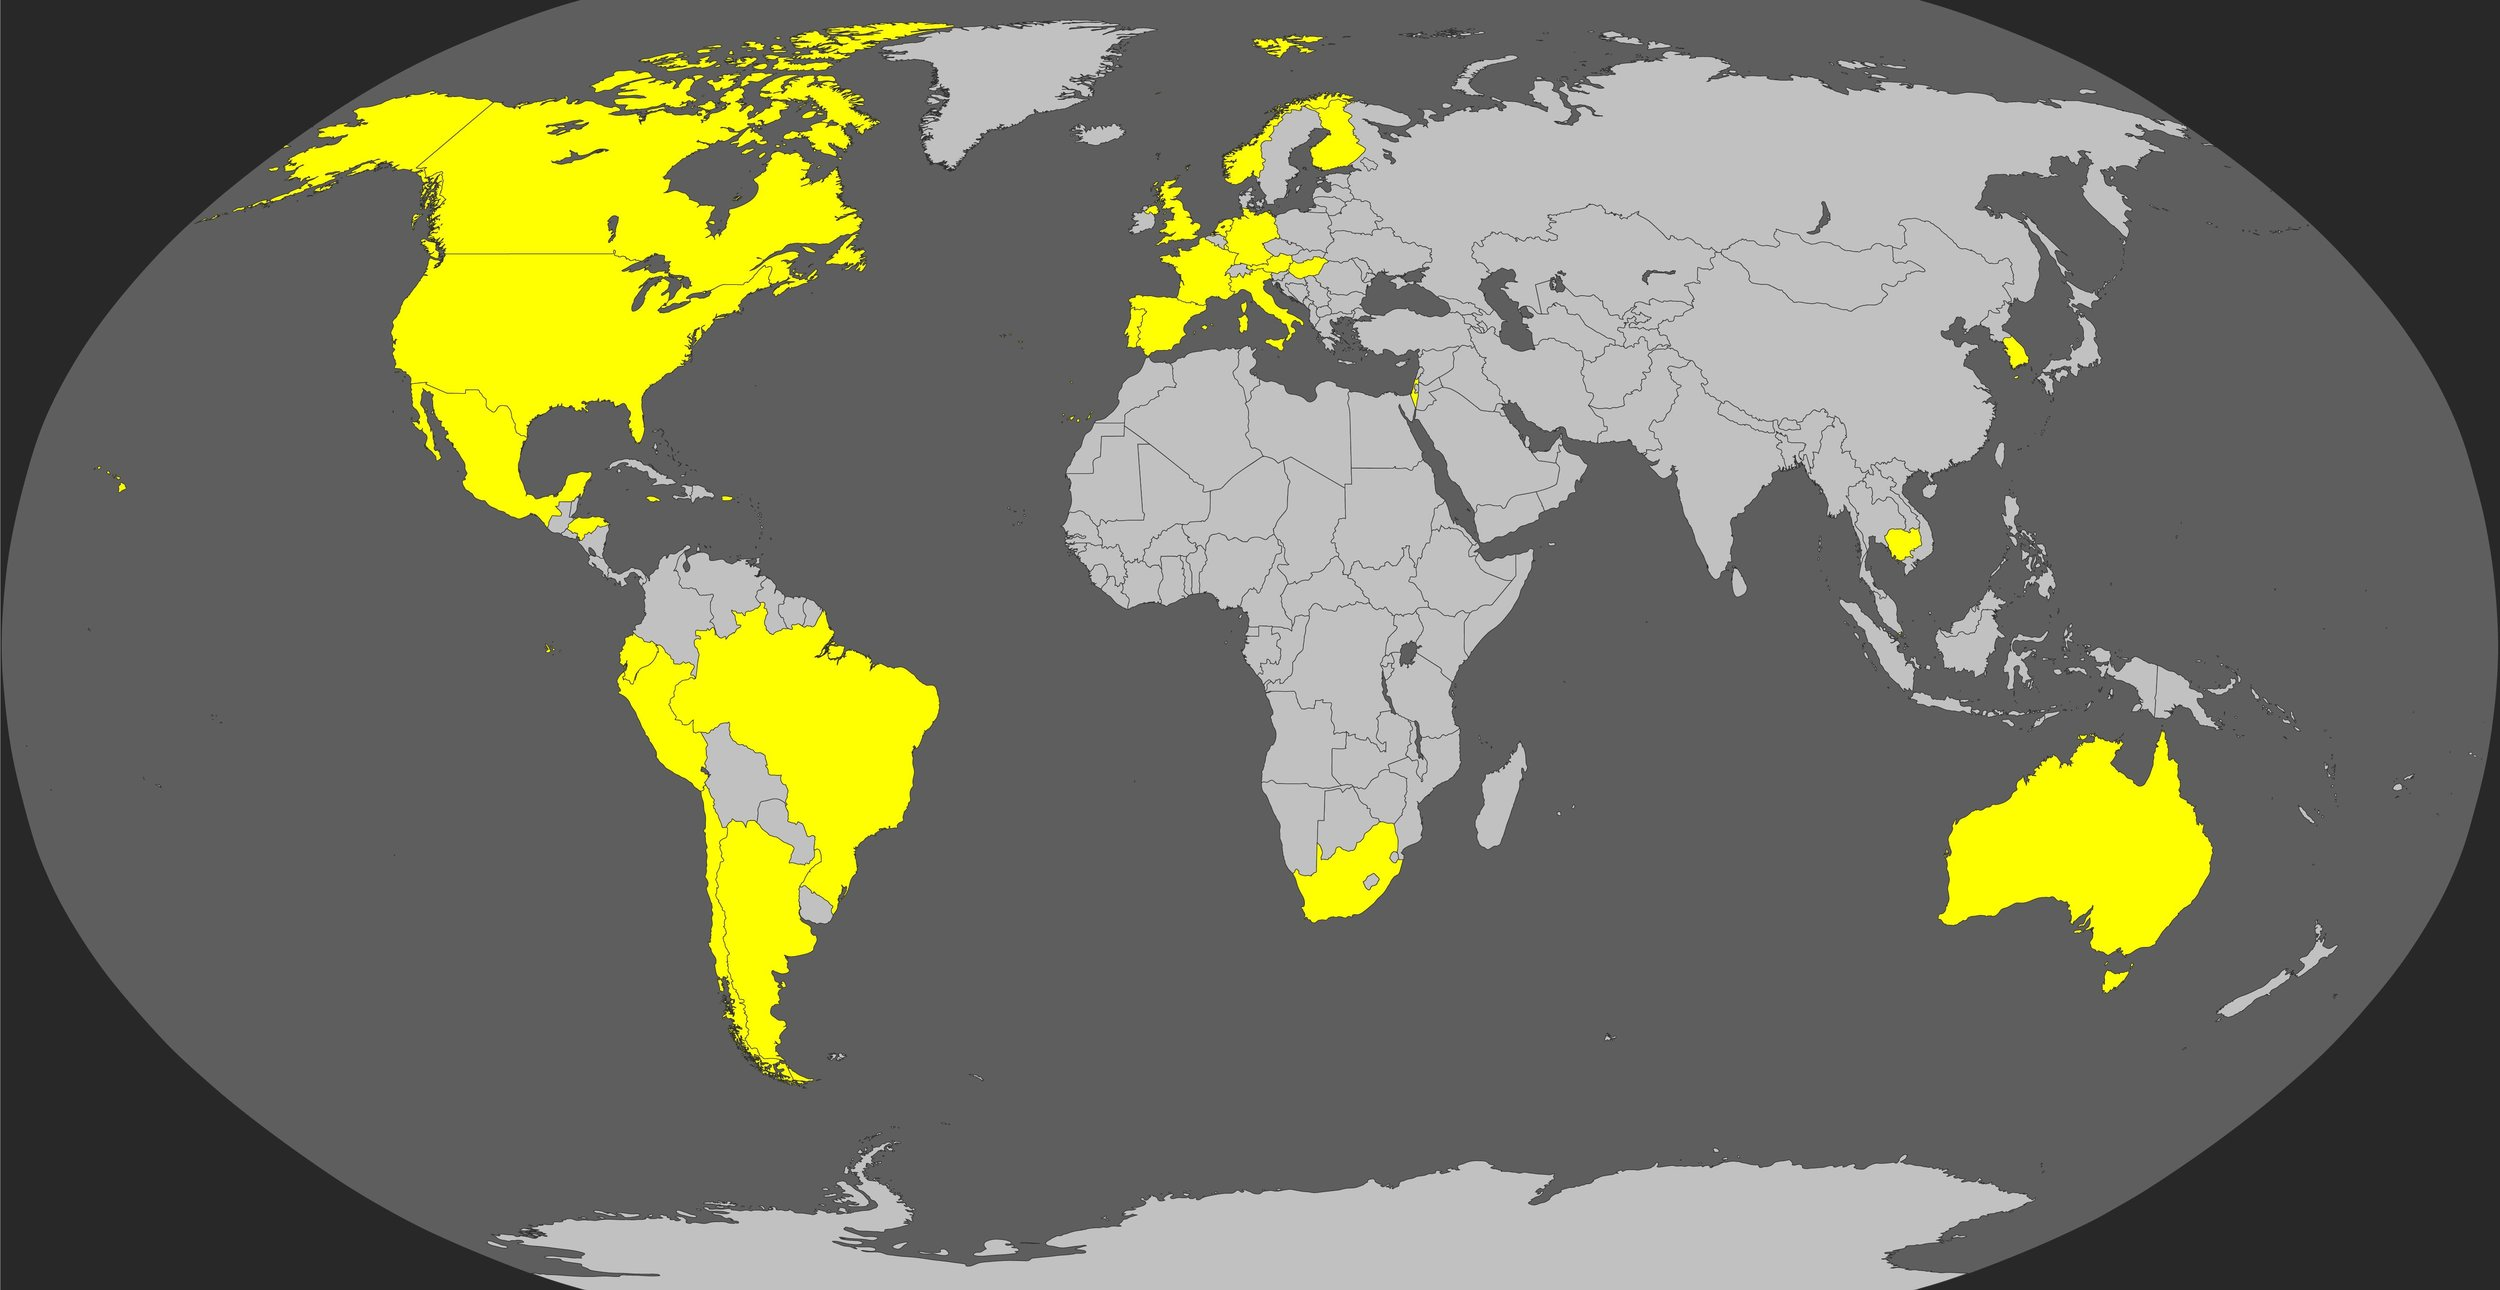 (countries representing current Experimental Sound Society members marked in yellow)